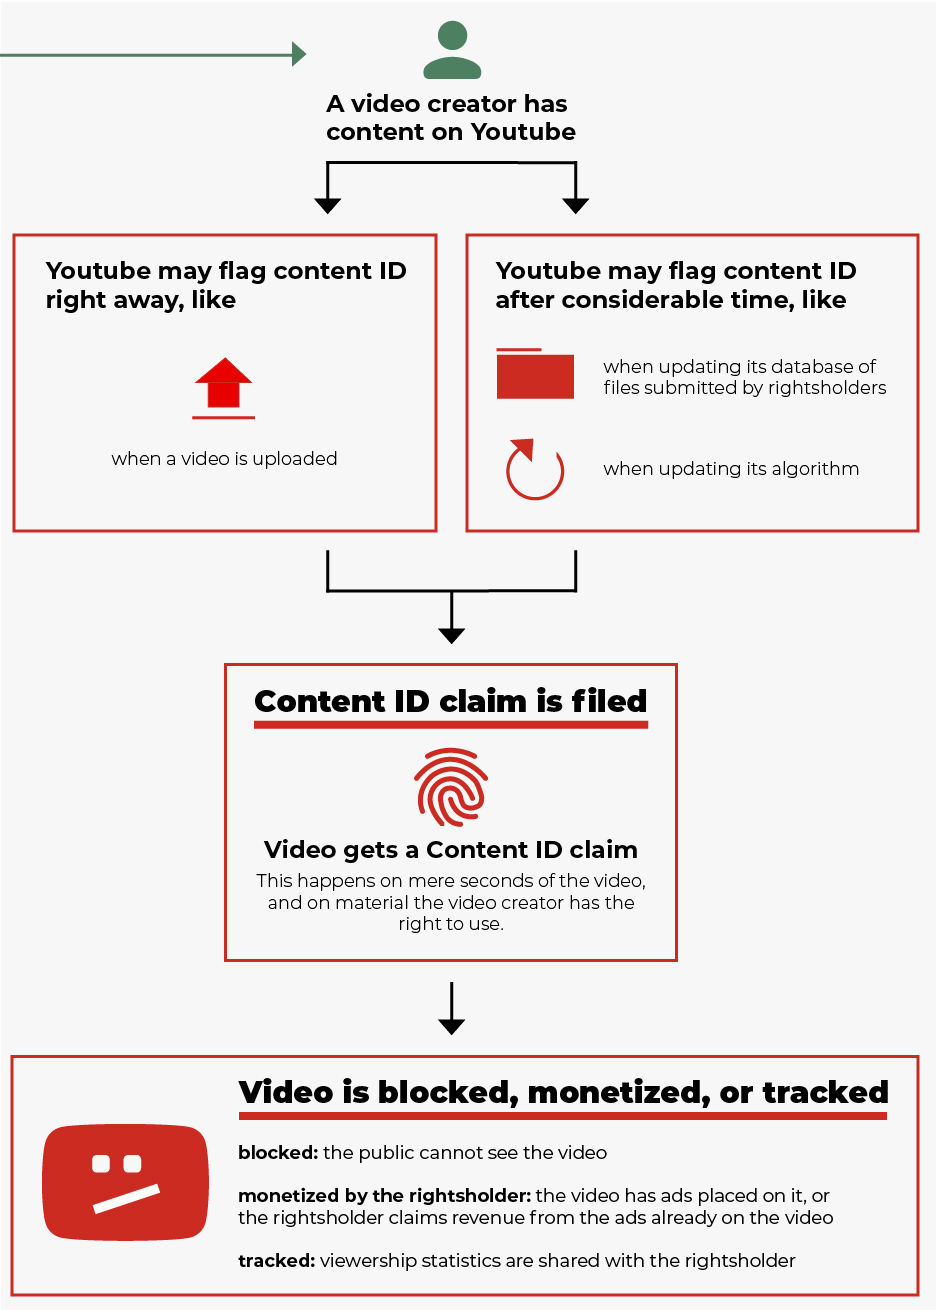 The first step of the chart, with significant modifications. A video creator has content on Youtube. Then, Youtube may apply a Content ID claim, either upon the video's upload, or when updating its database of files submitted by rightsholders or updating its algorithm.